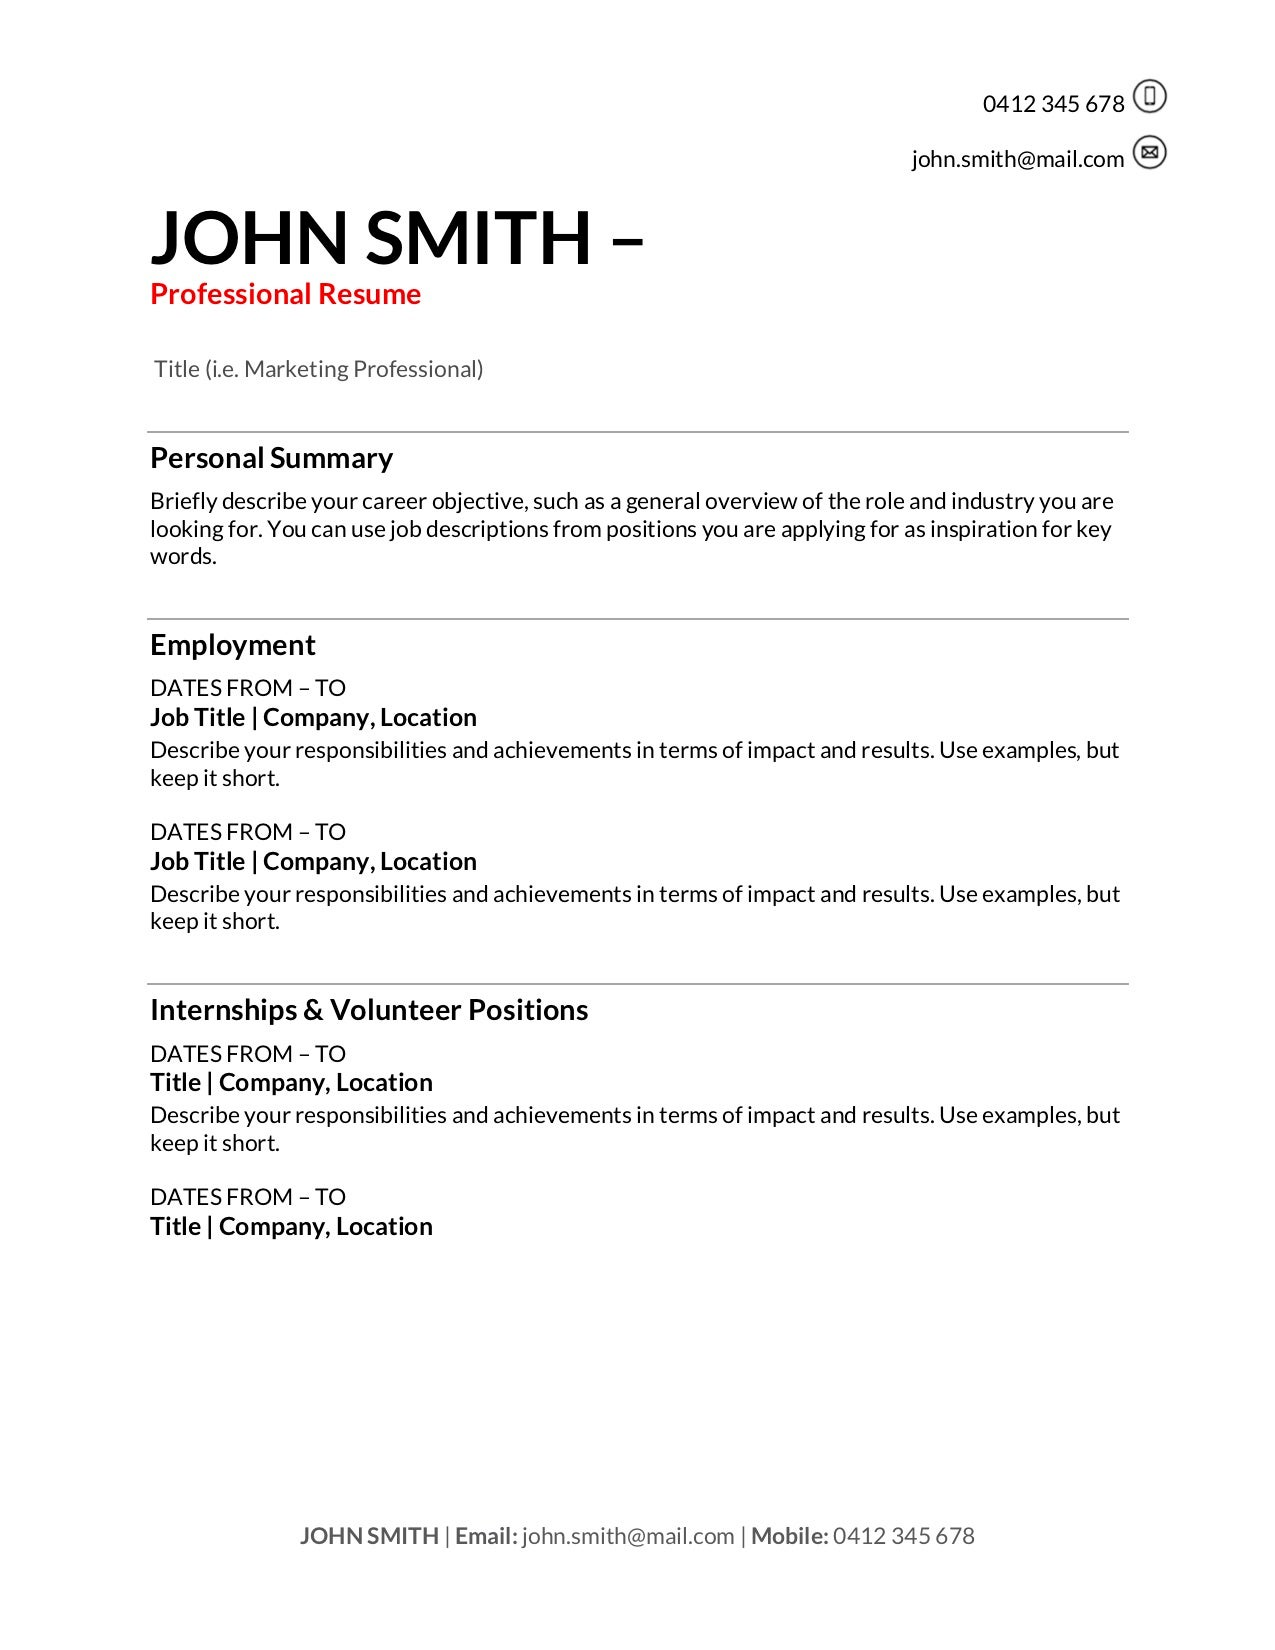 free resume templates to write in training au for its jobs powerpoint template title Resume Resume Templates For Its Jobs